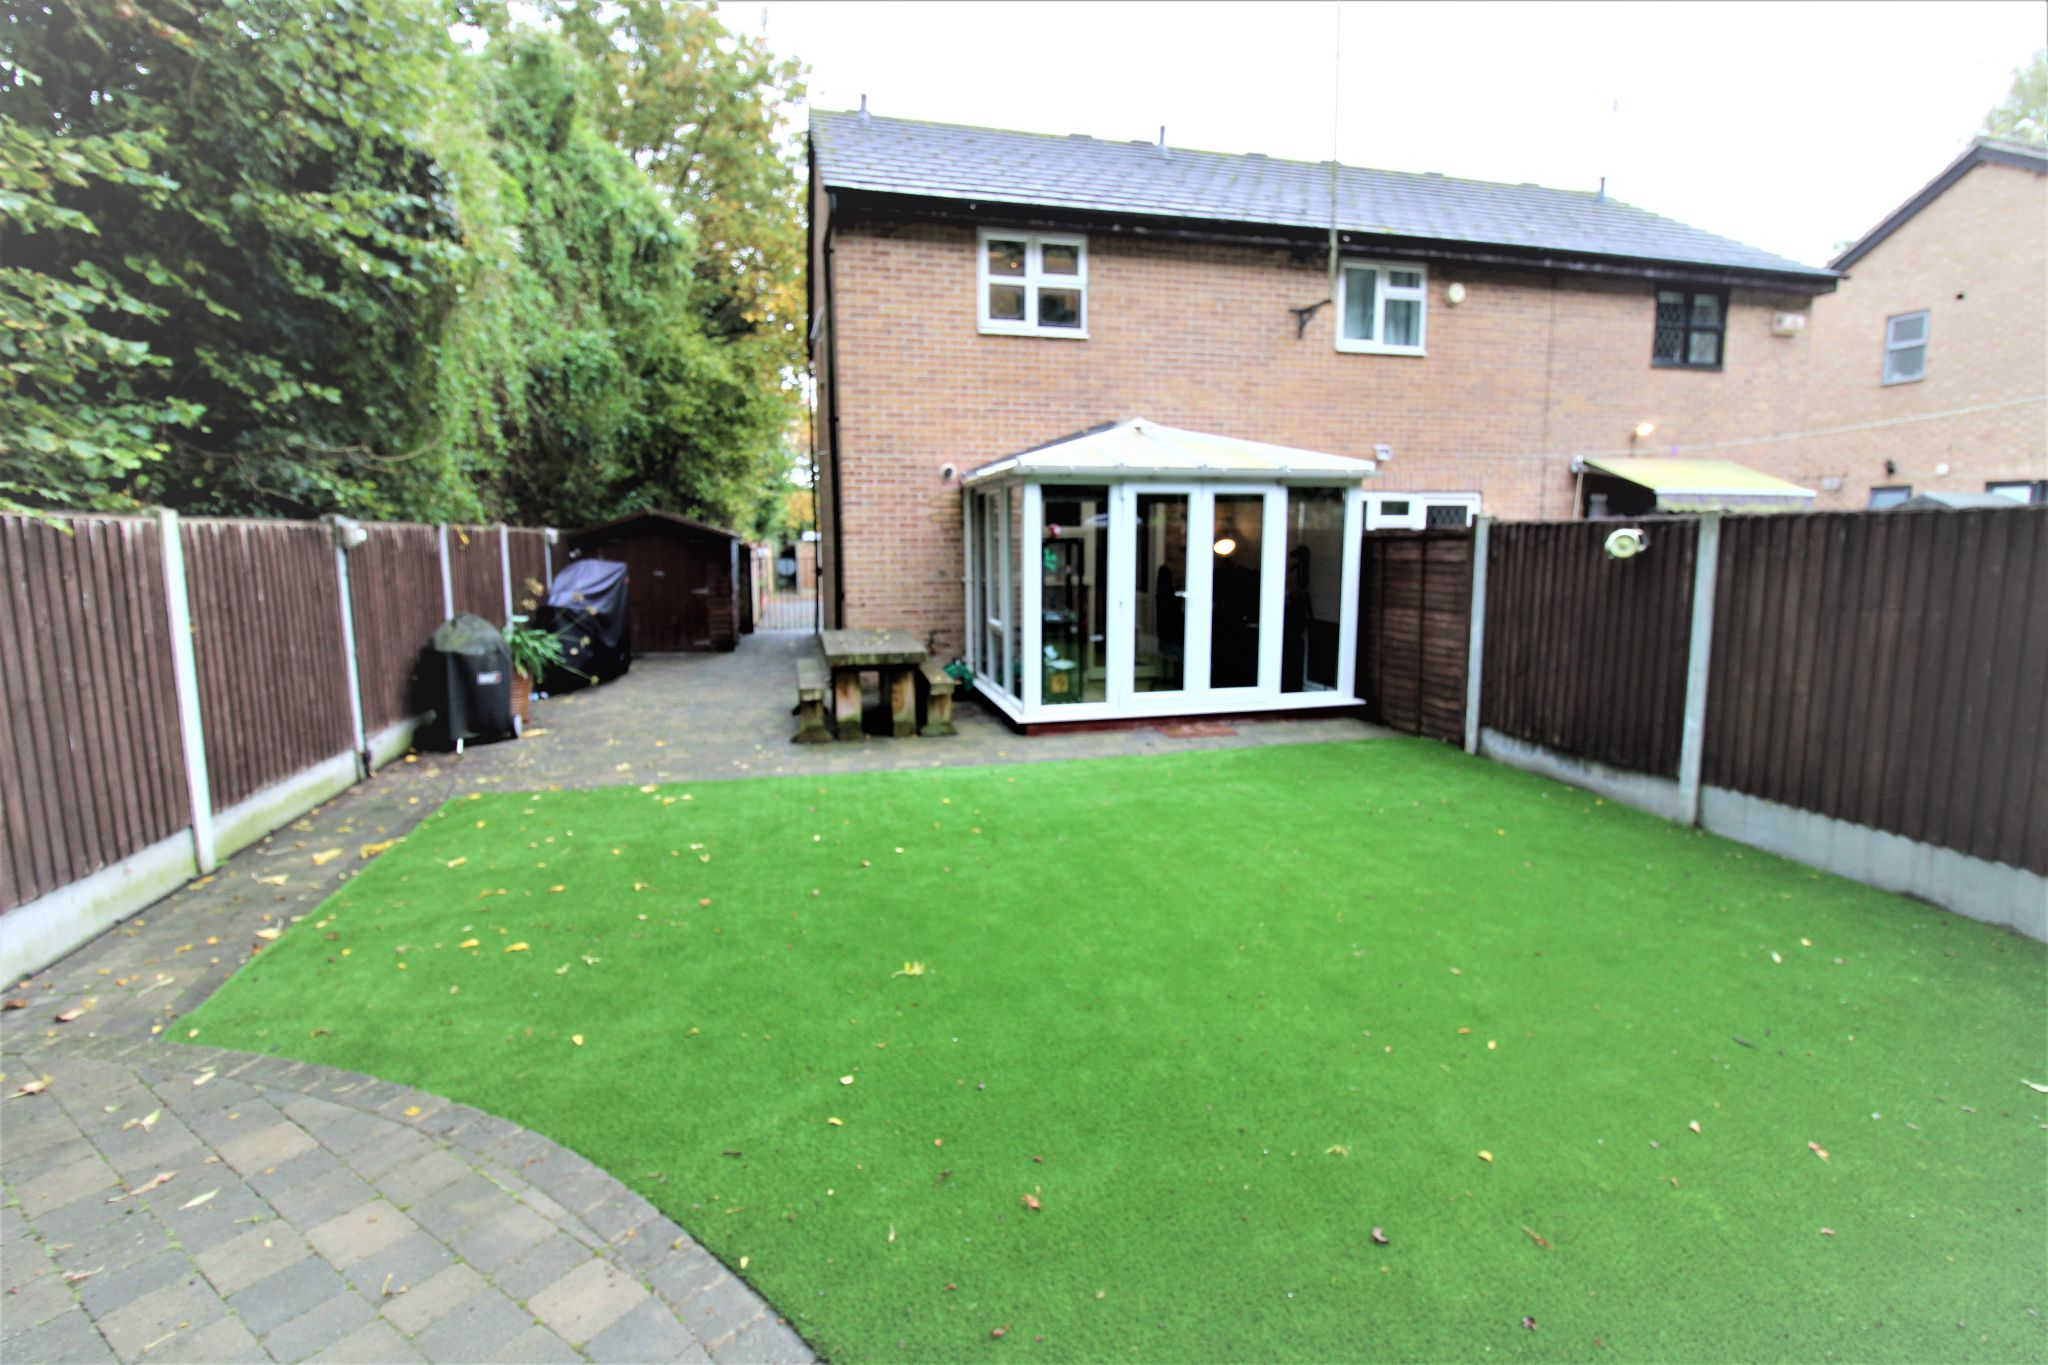 2 Bedroom End Terraced House For Sale - Garden2